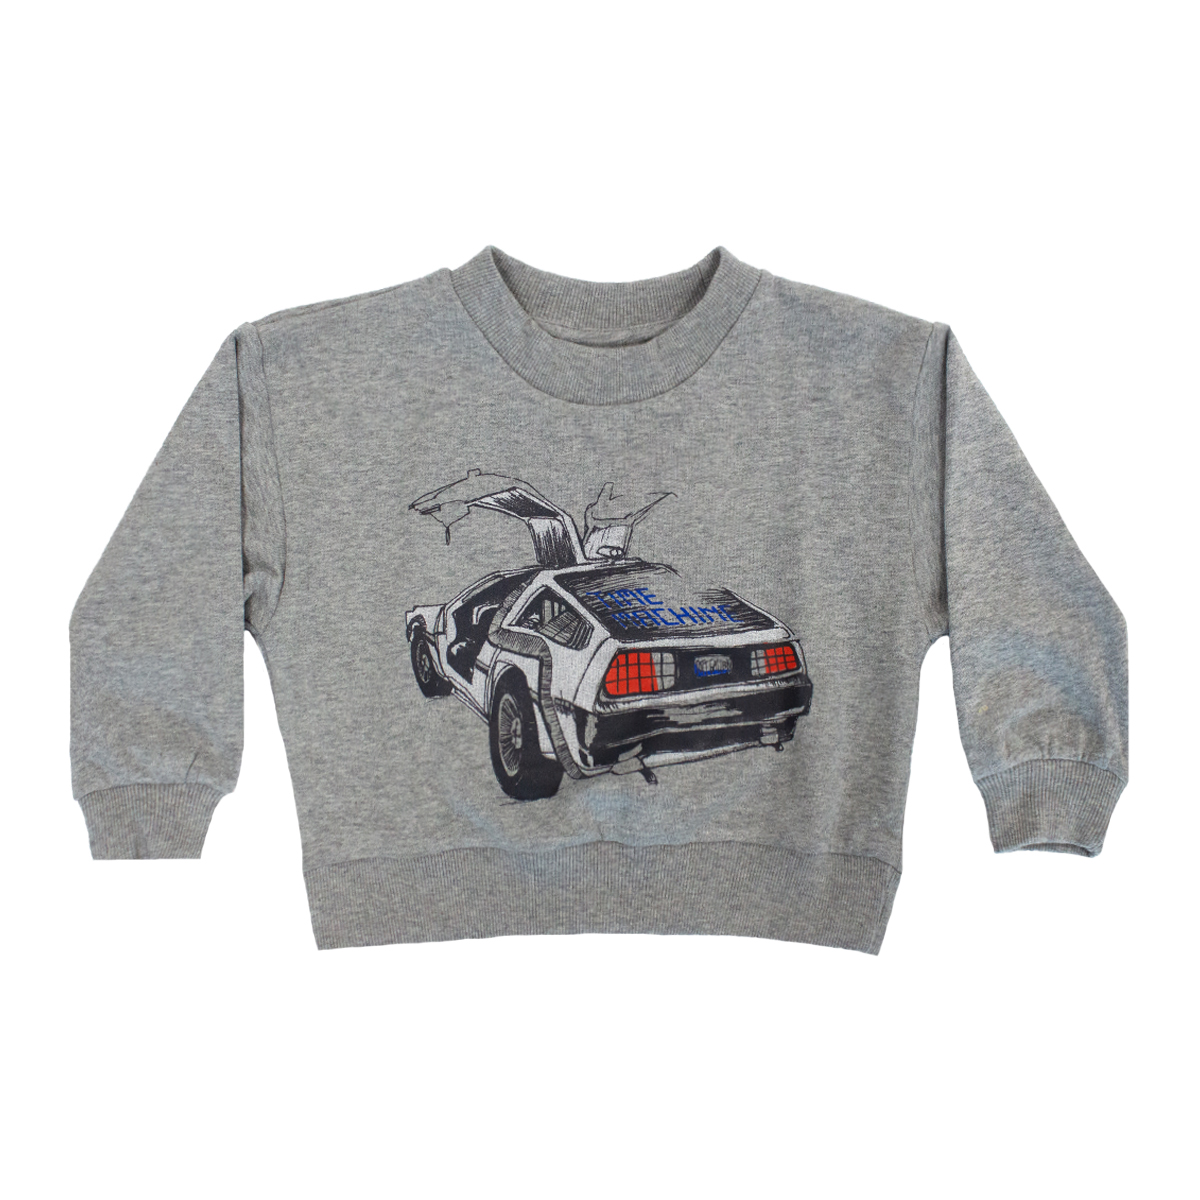 Soft Gallery Drew Sweatshirt in Delorean Grey